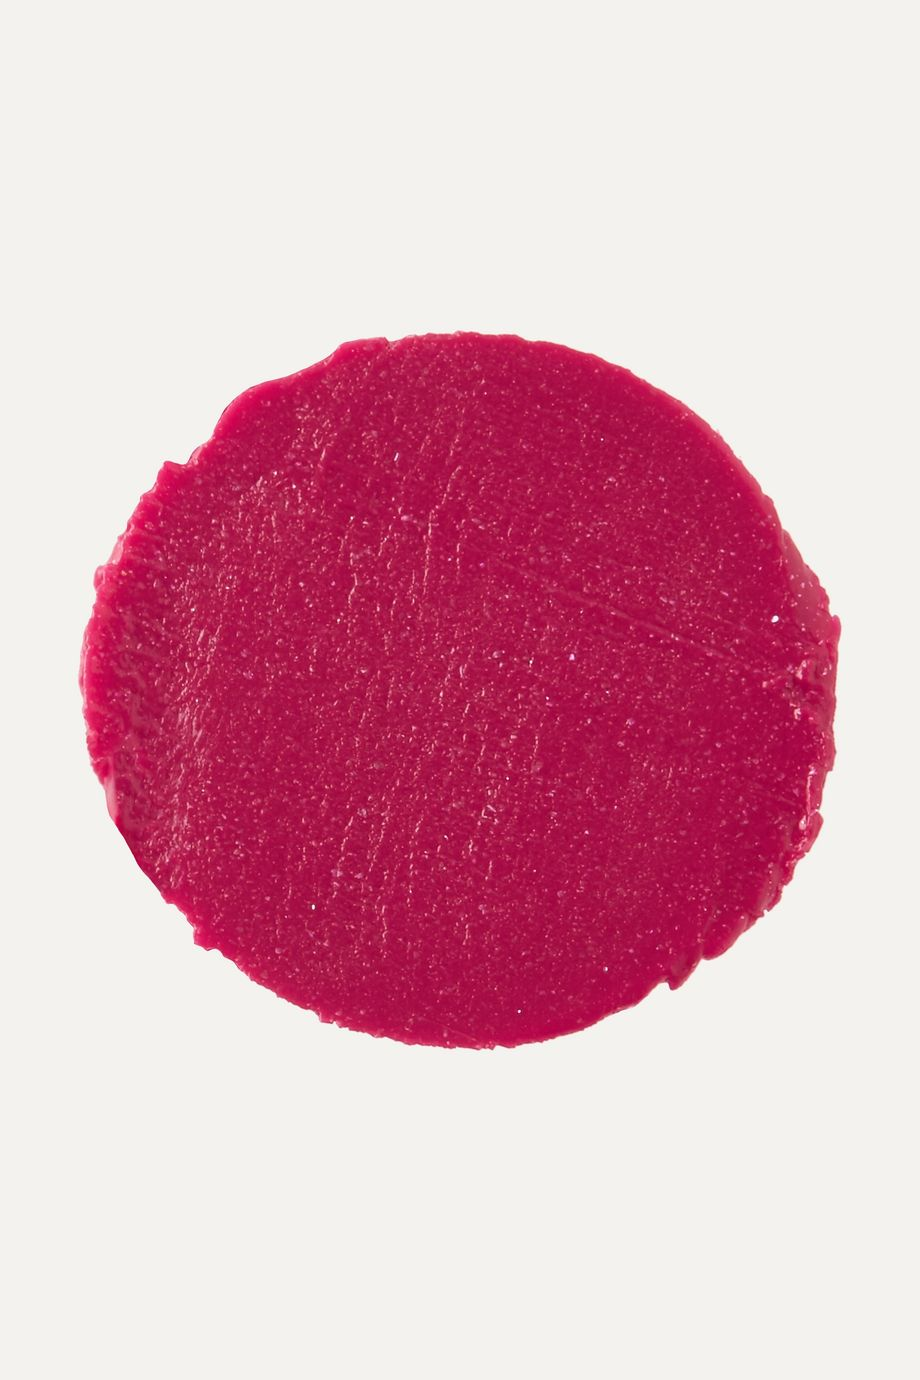 Givenchy Beauty Rouge Interdit Vinyl Lipstick - African Raspberry No.18